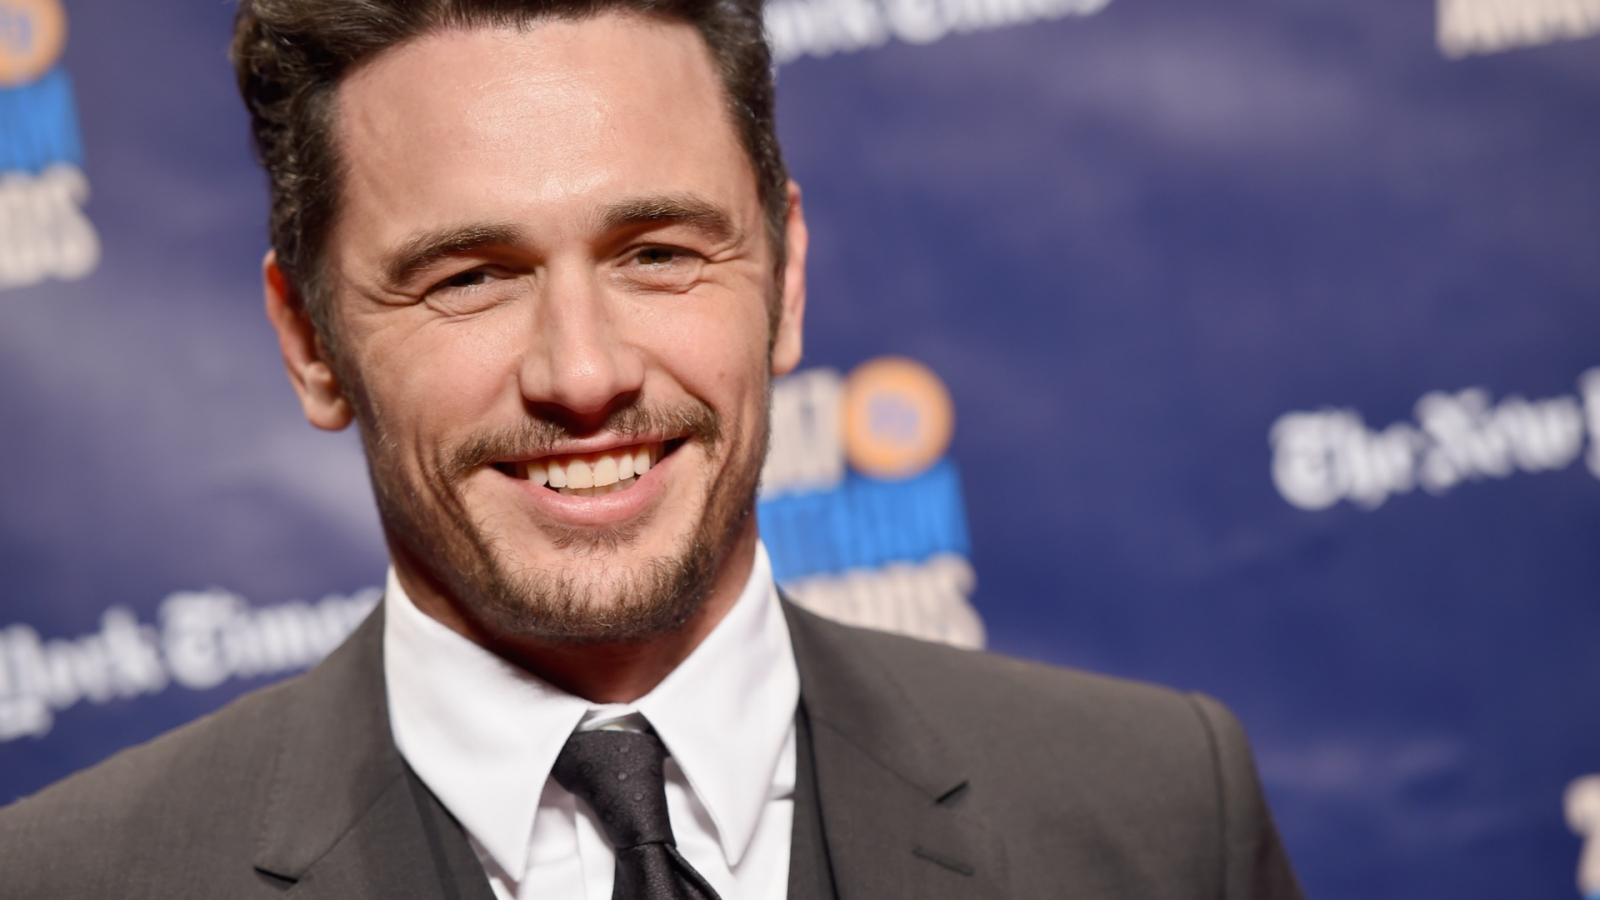 james-franco-says-sexual-misconduct-allegations-not-accurate